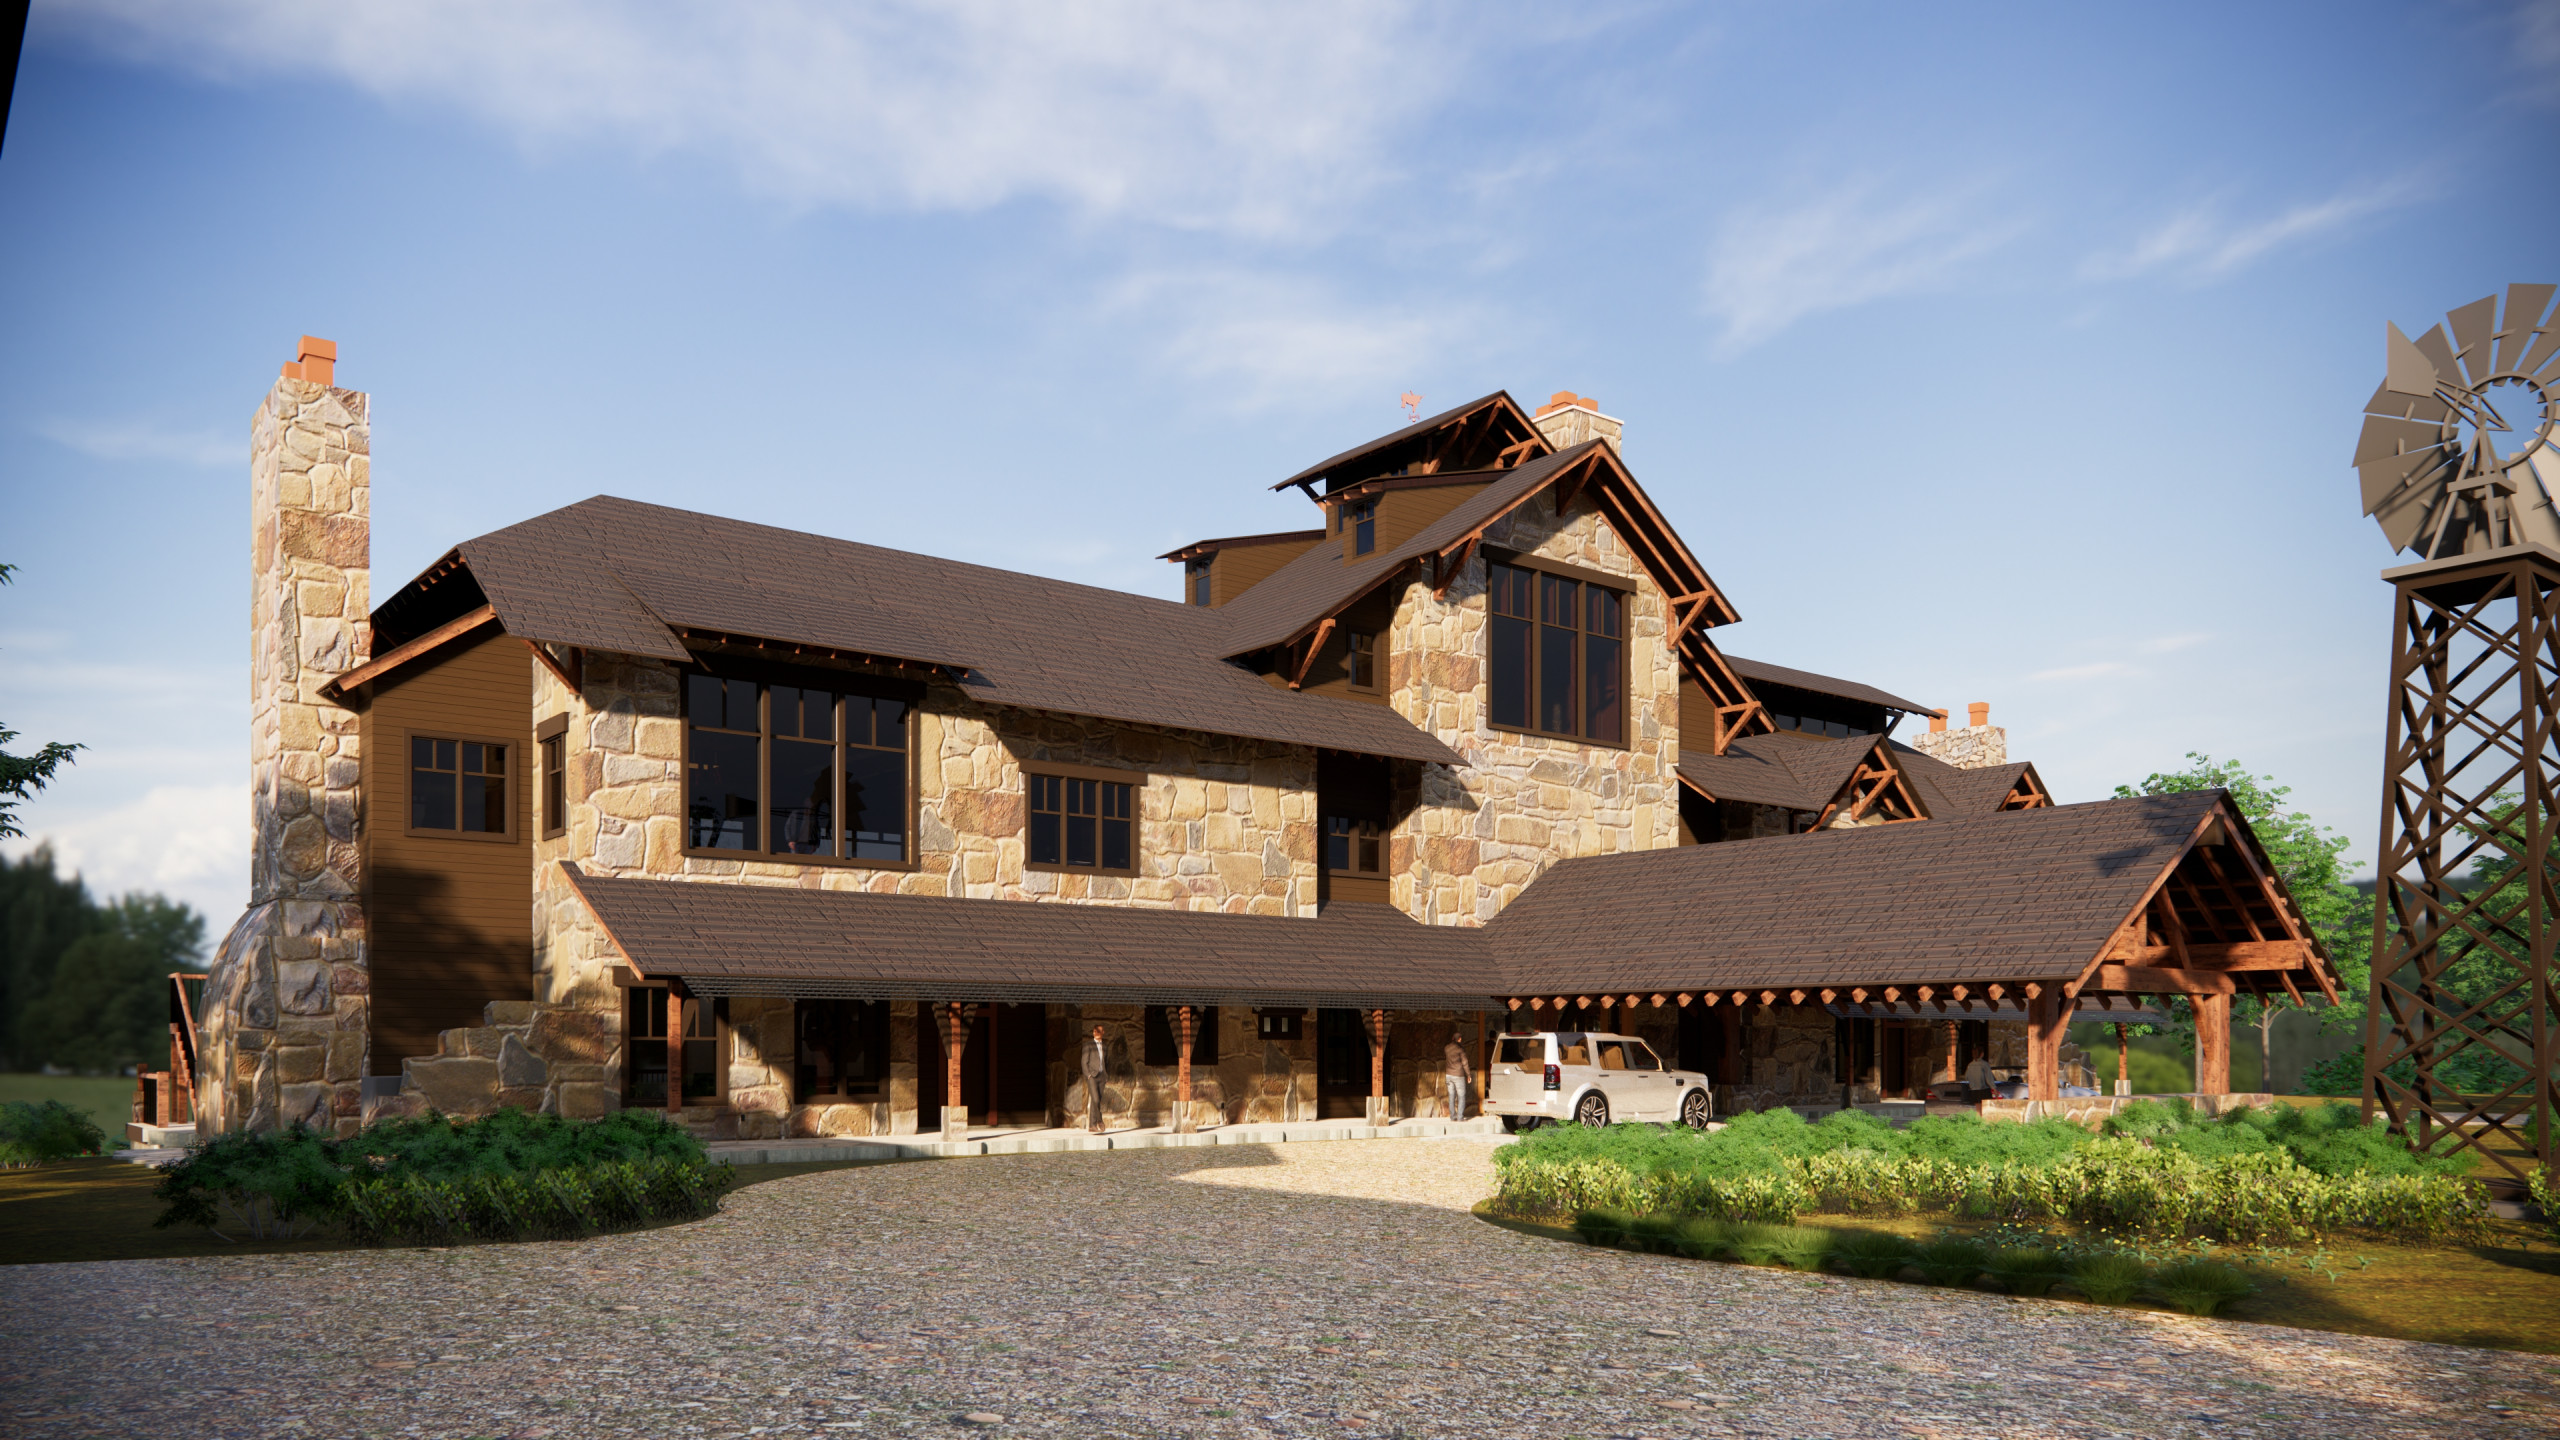 The Overlook Guest Lodge